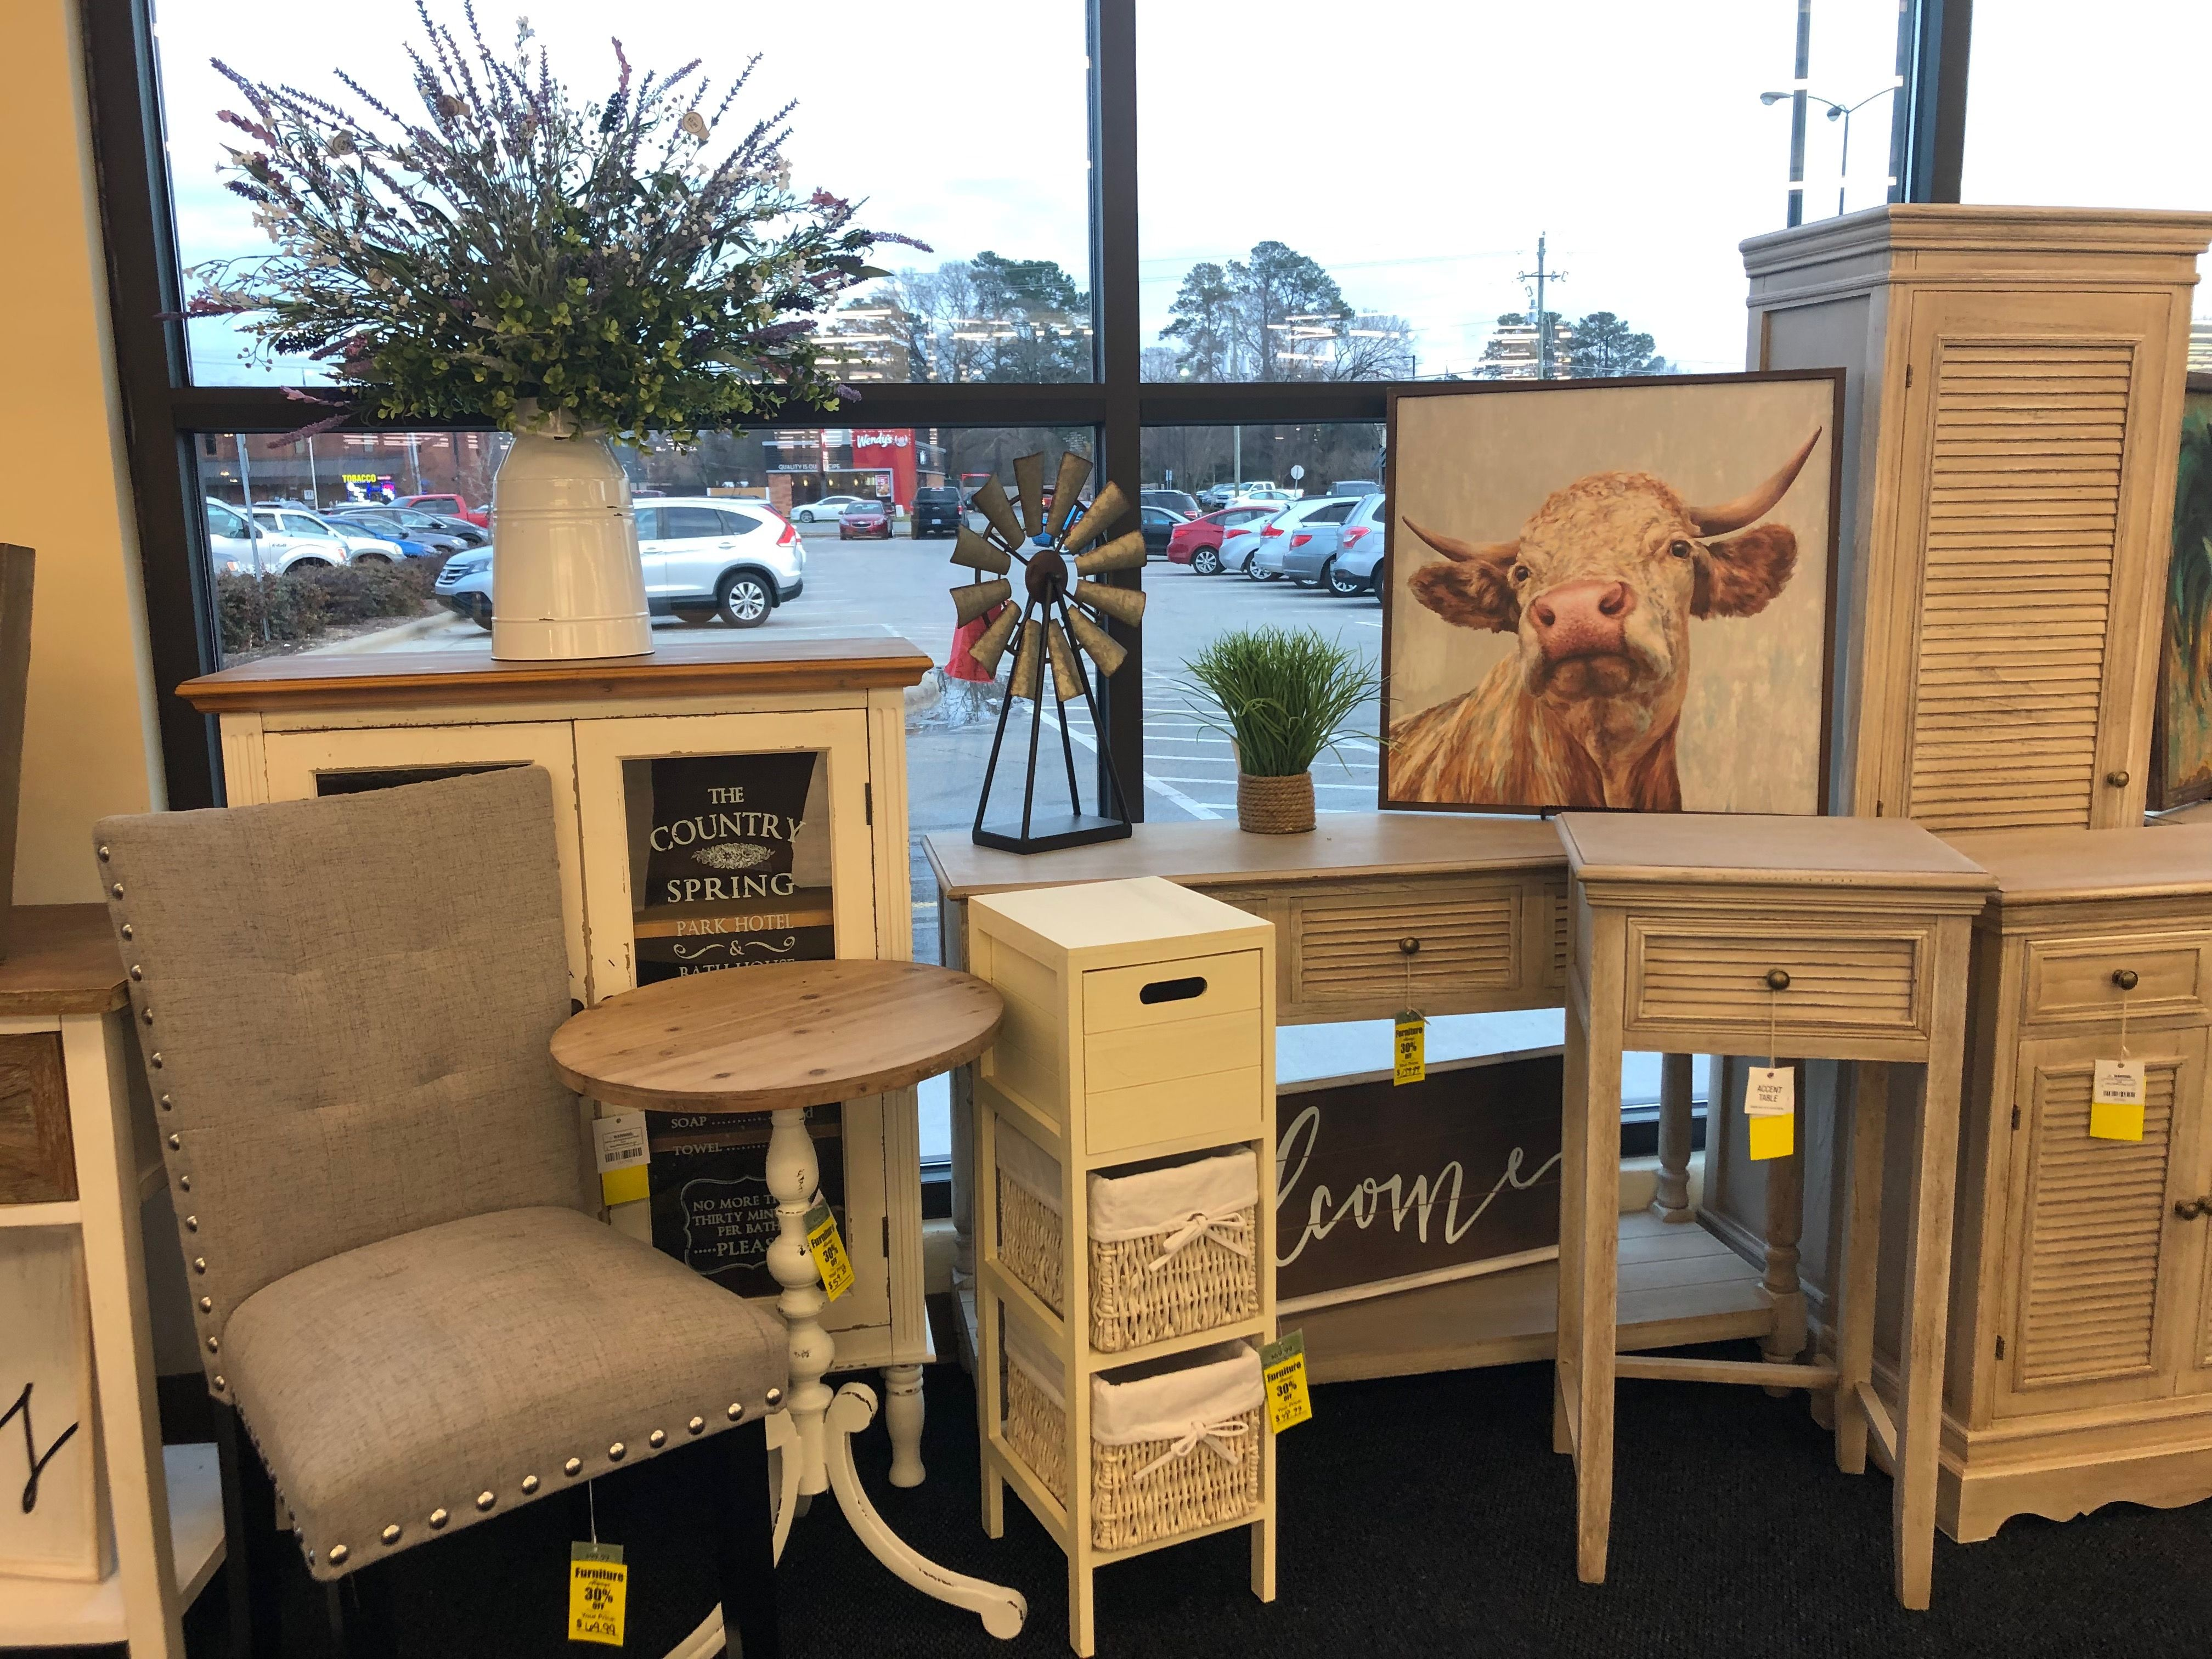 Hobby Lobby Furniture Display With Images Hobby Lobby